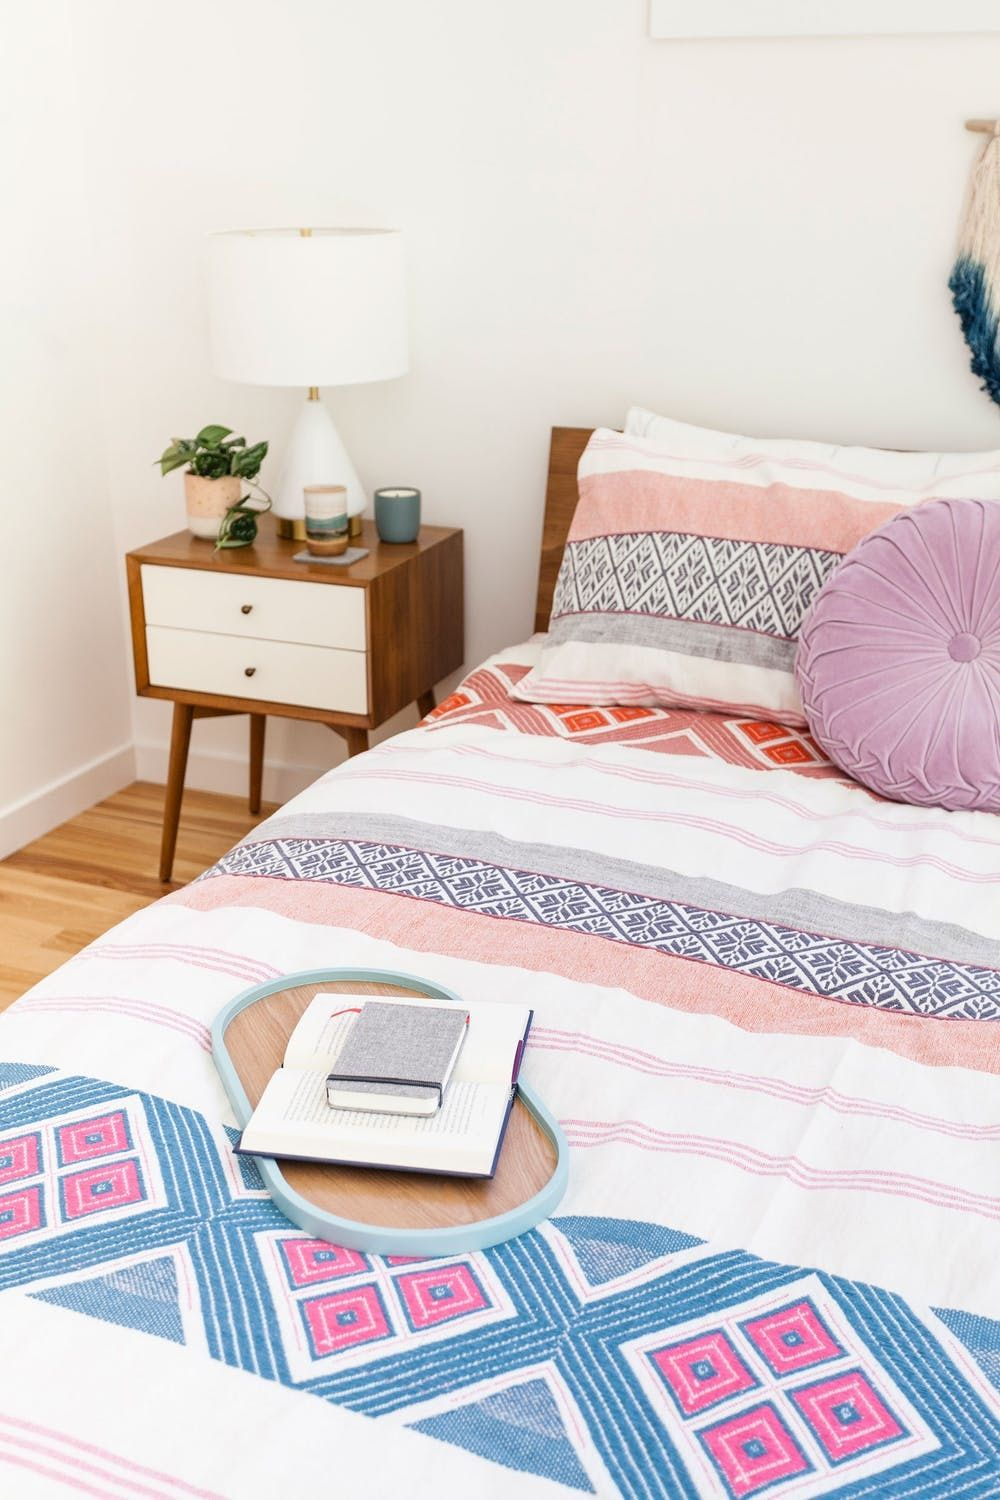 How To Make Your Bedroom Eco Friendly Boho And Minimalist All At The Same Time Brit Co